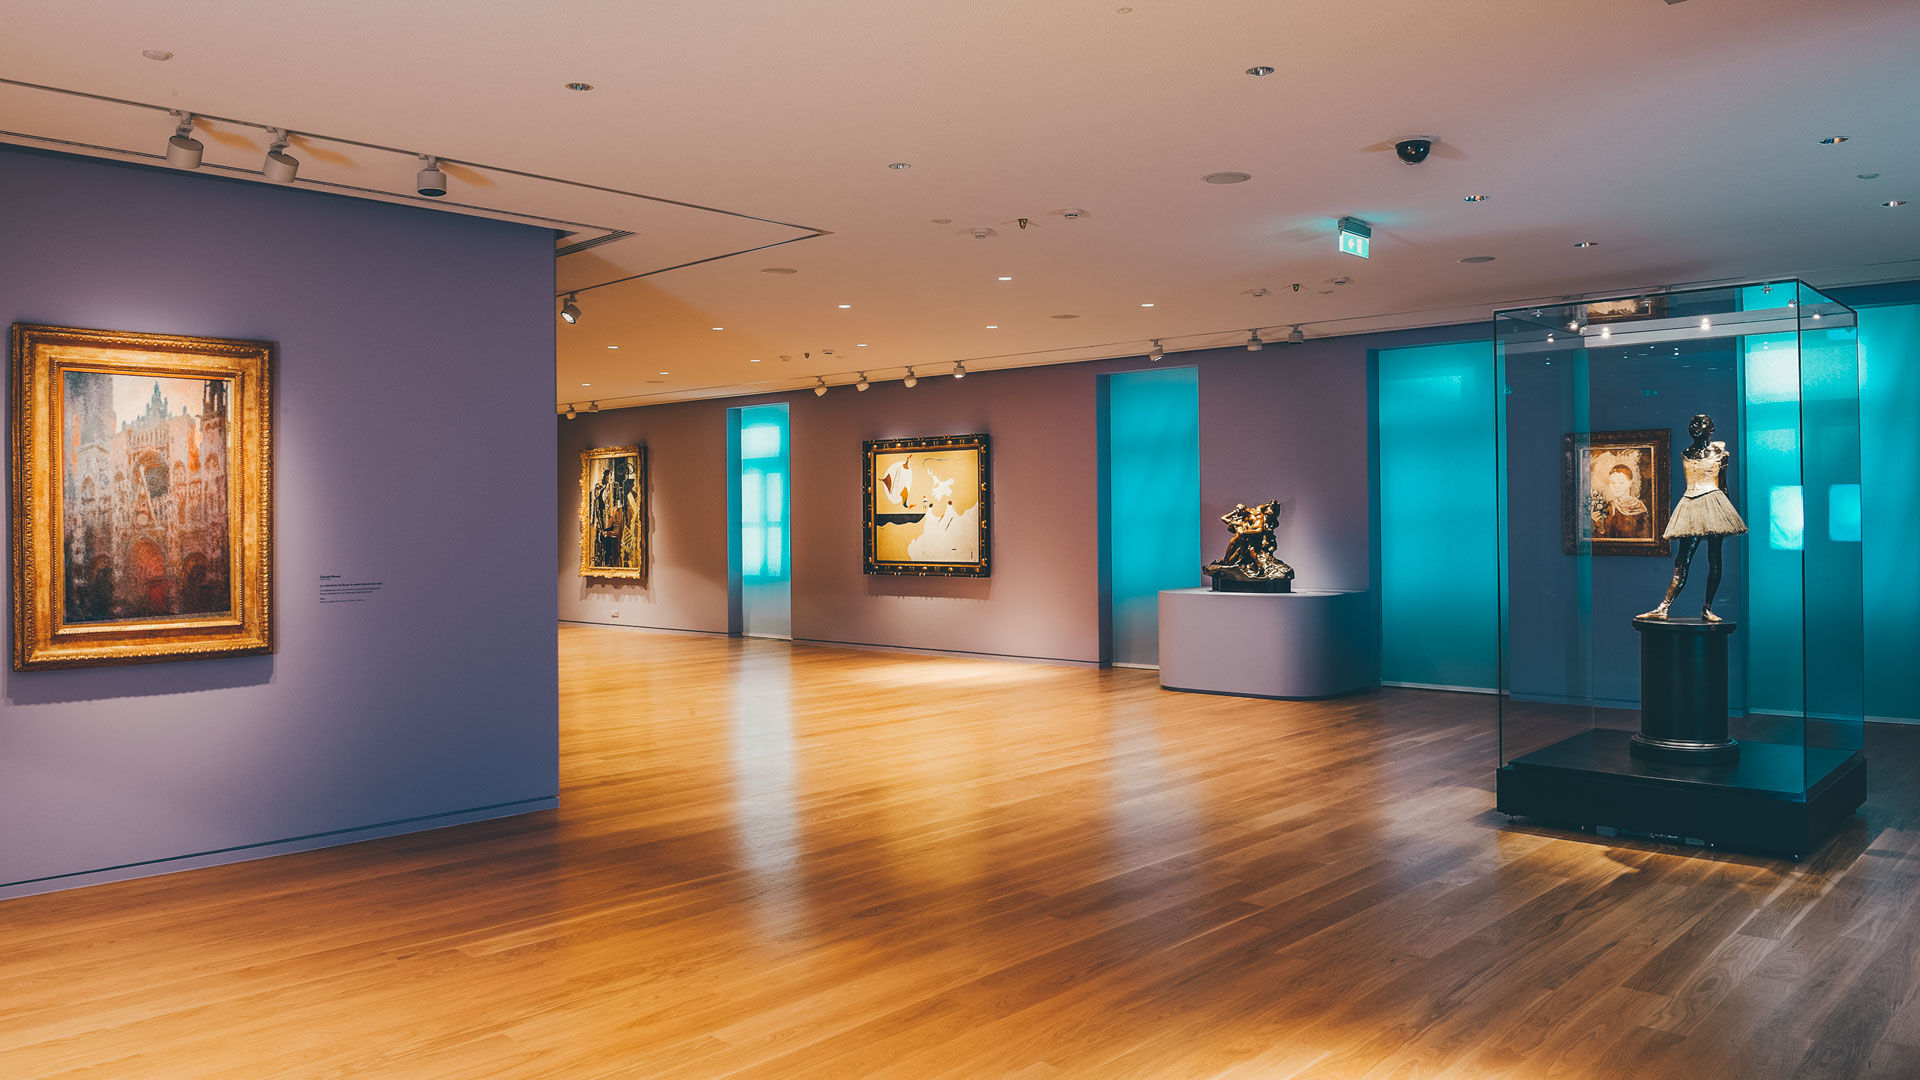 Explore one of the most extraordinary collections of artwork in the world